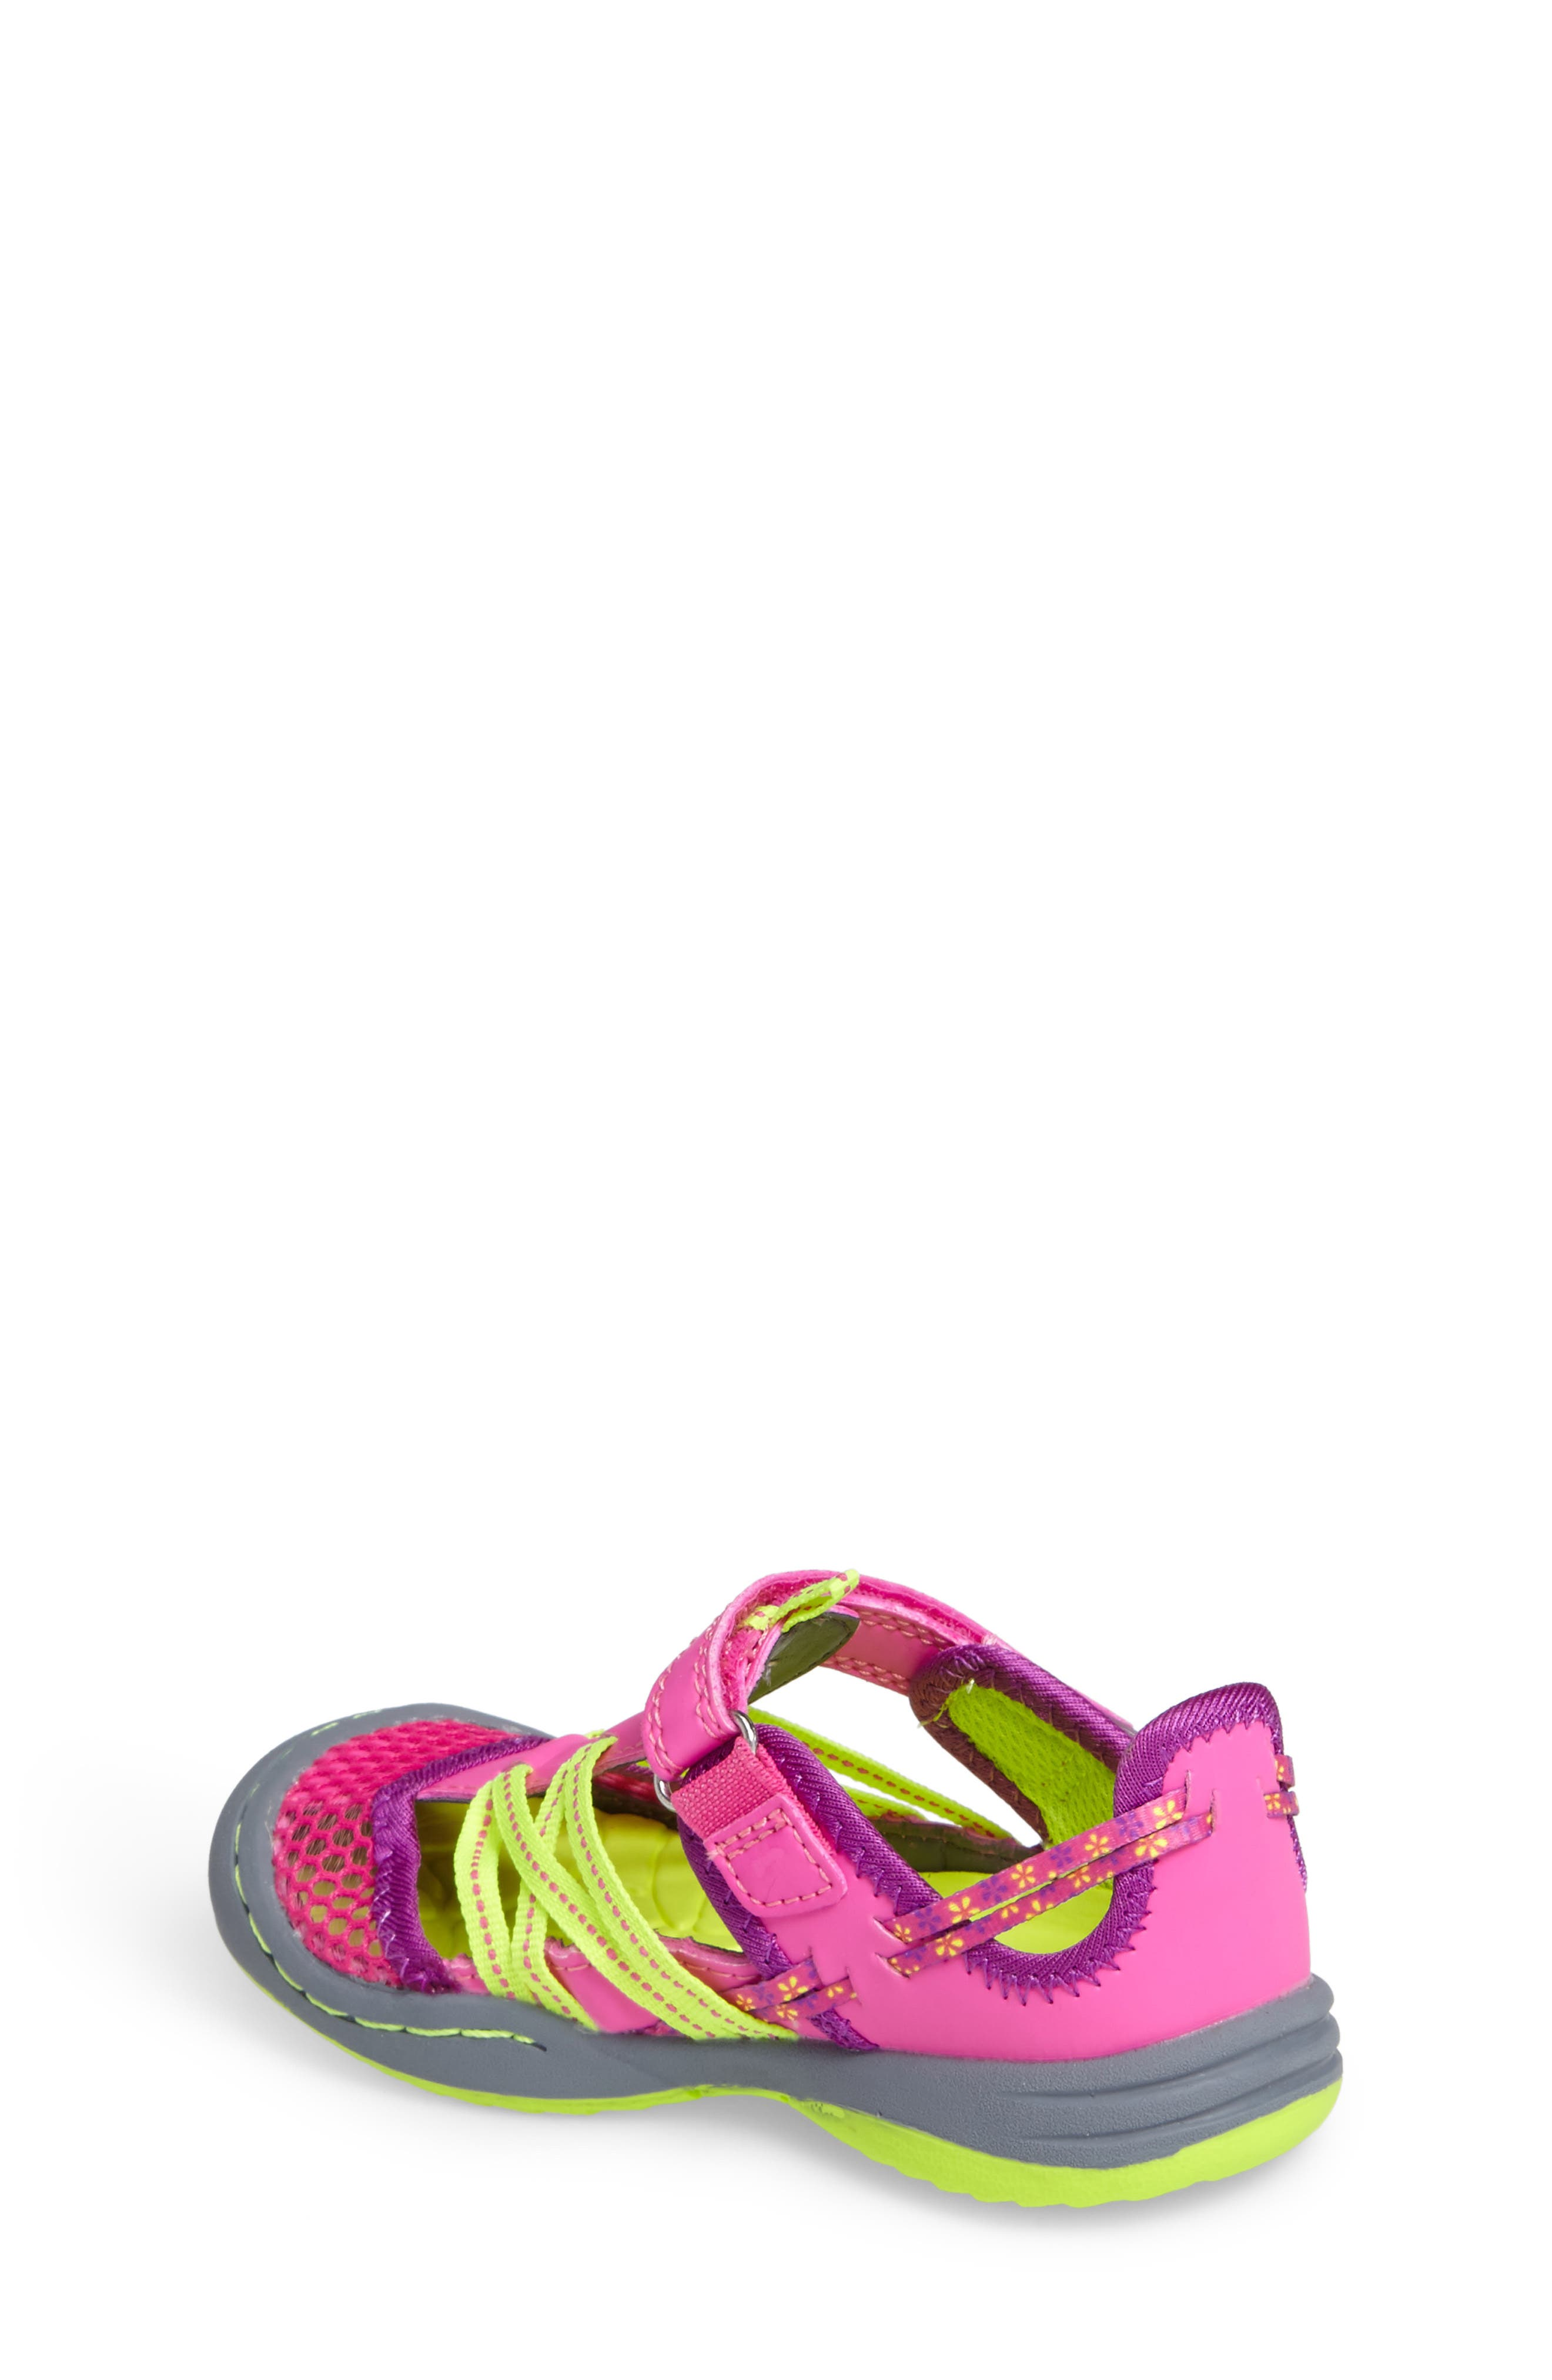 Everly Water Sport Fisherman Sandal,                             Alternate thumbnail 2, color,                             Pink/ Neon